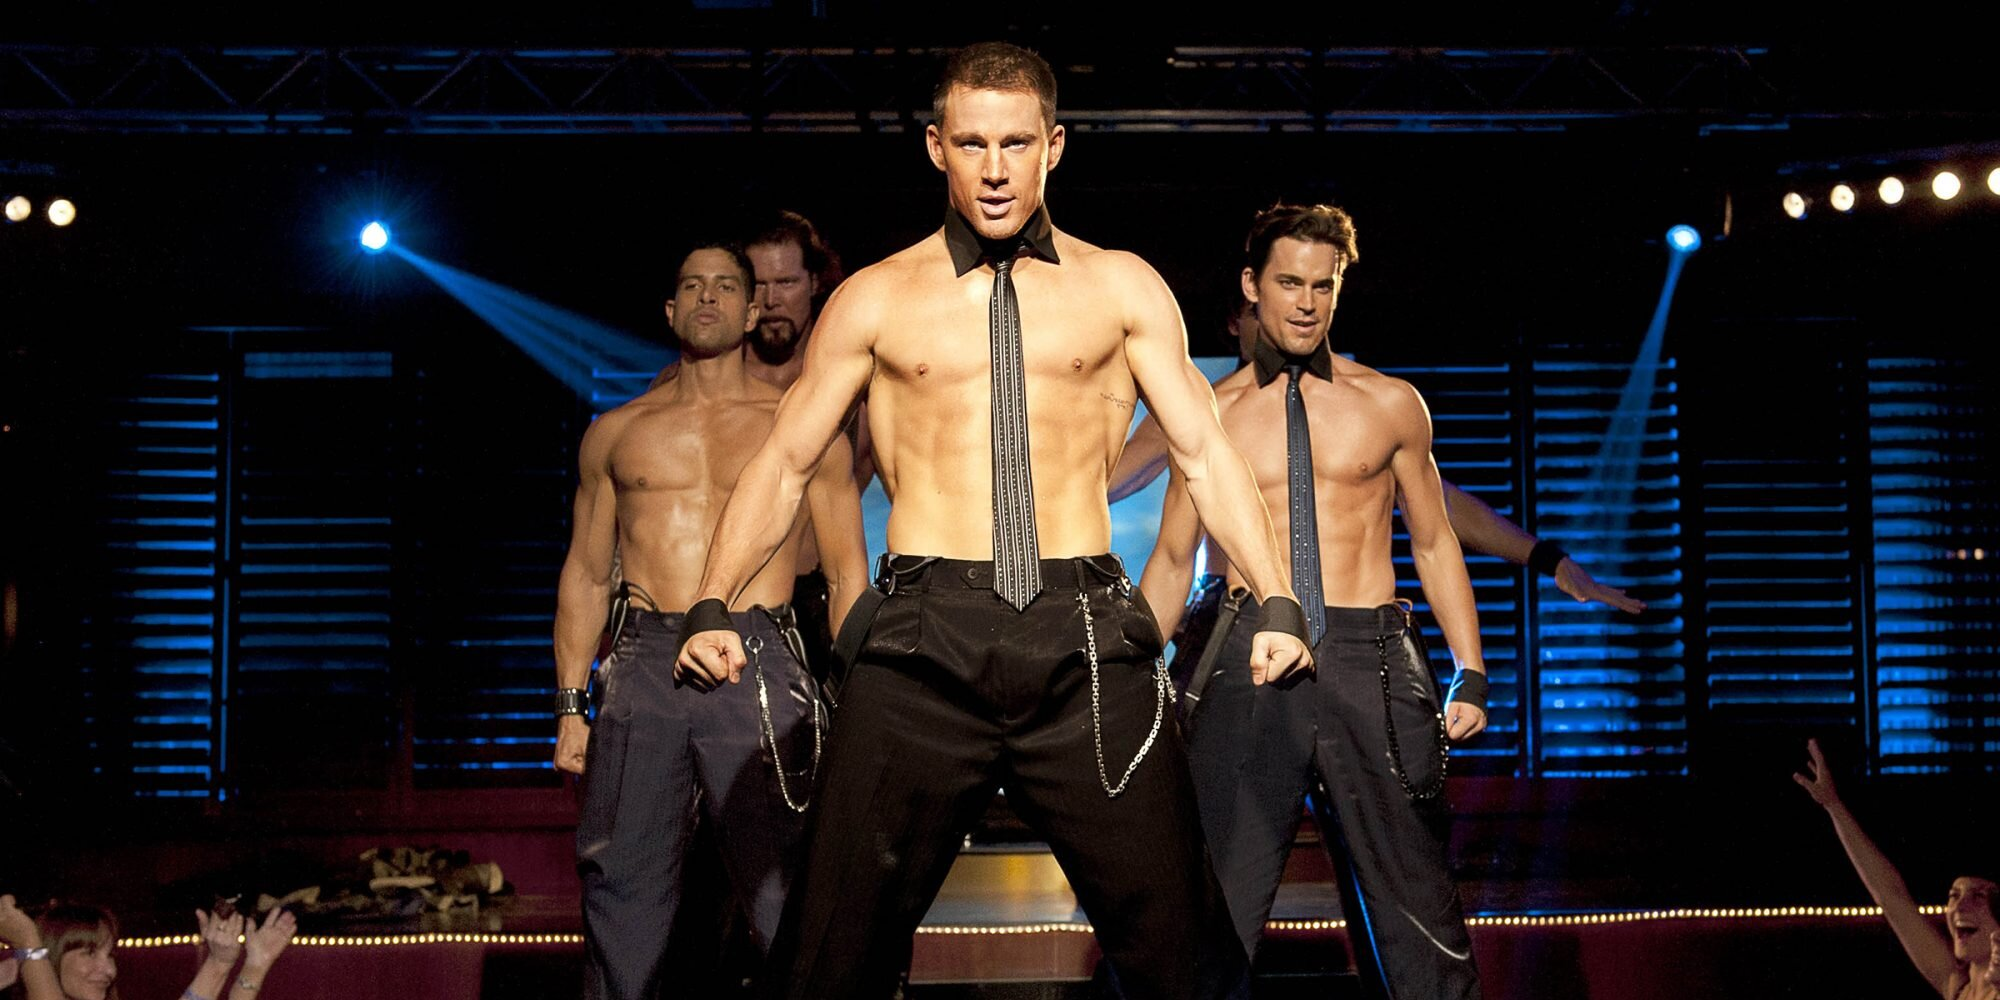 'Magic Mike' competition series with Channing Tatum will search for the next big stud muffin